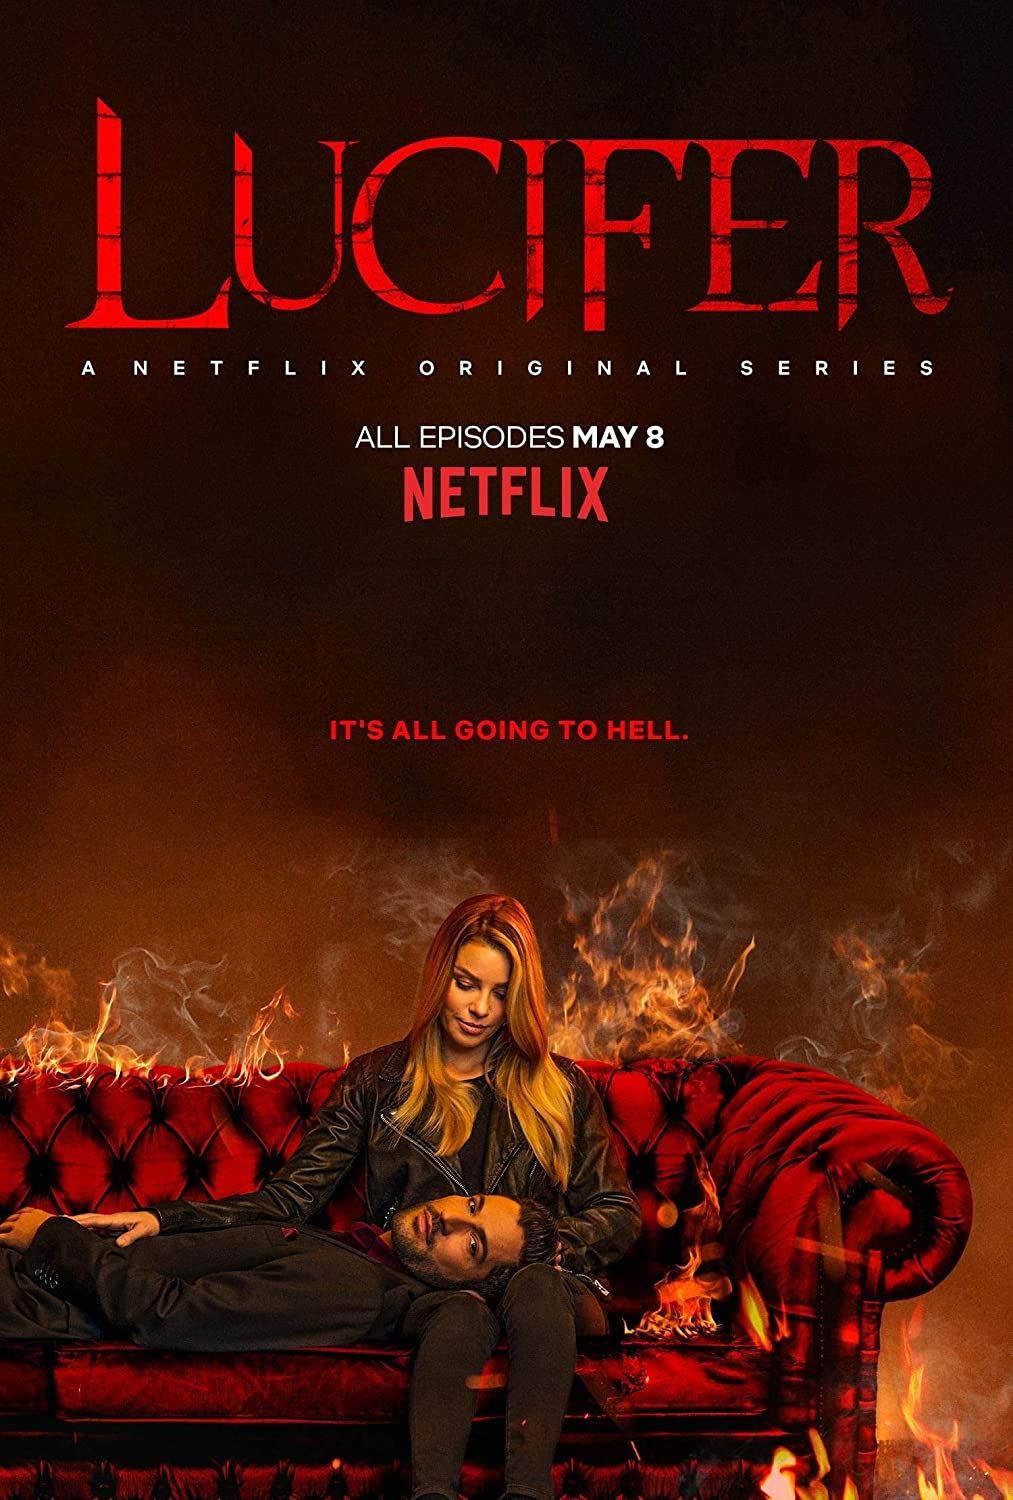 Lucifer Poster Print Home Wall Decor Gift